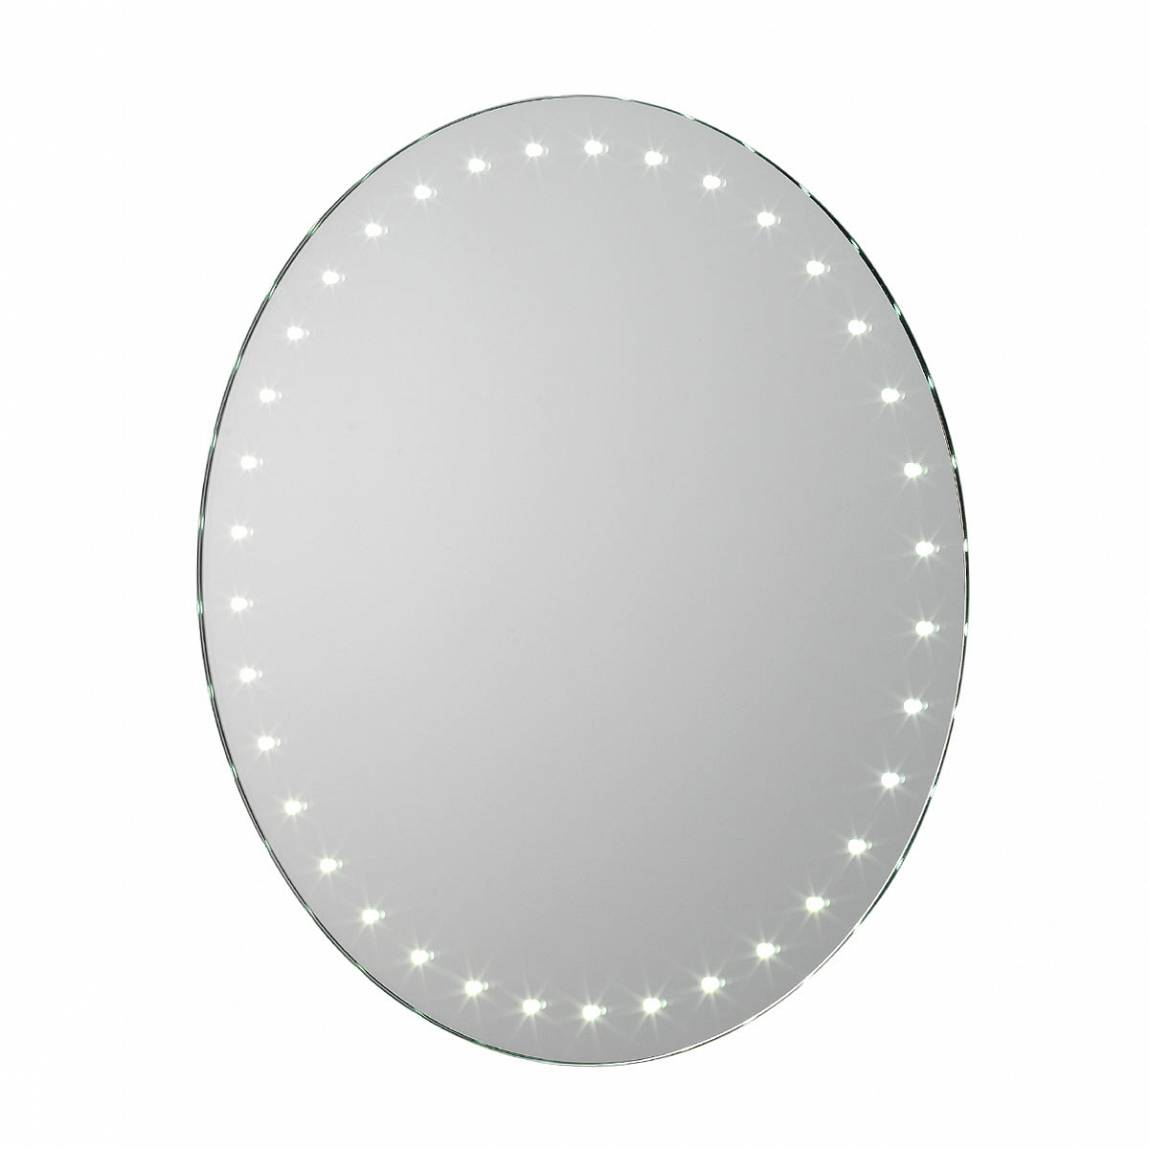 Image of Aries LED Round Battery Mirror